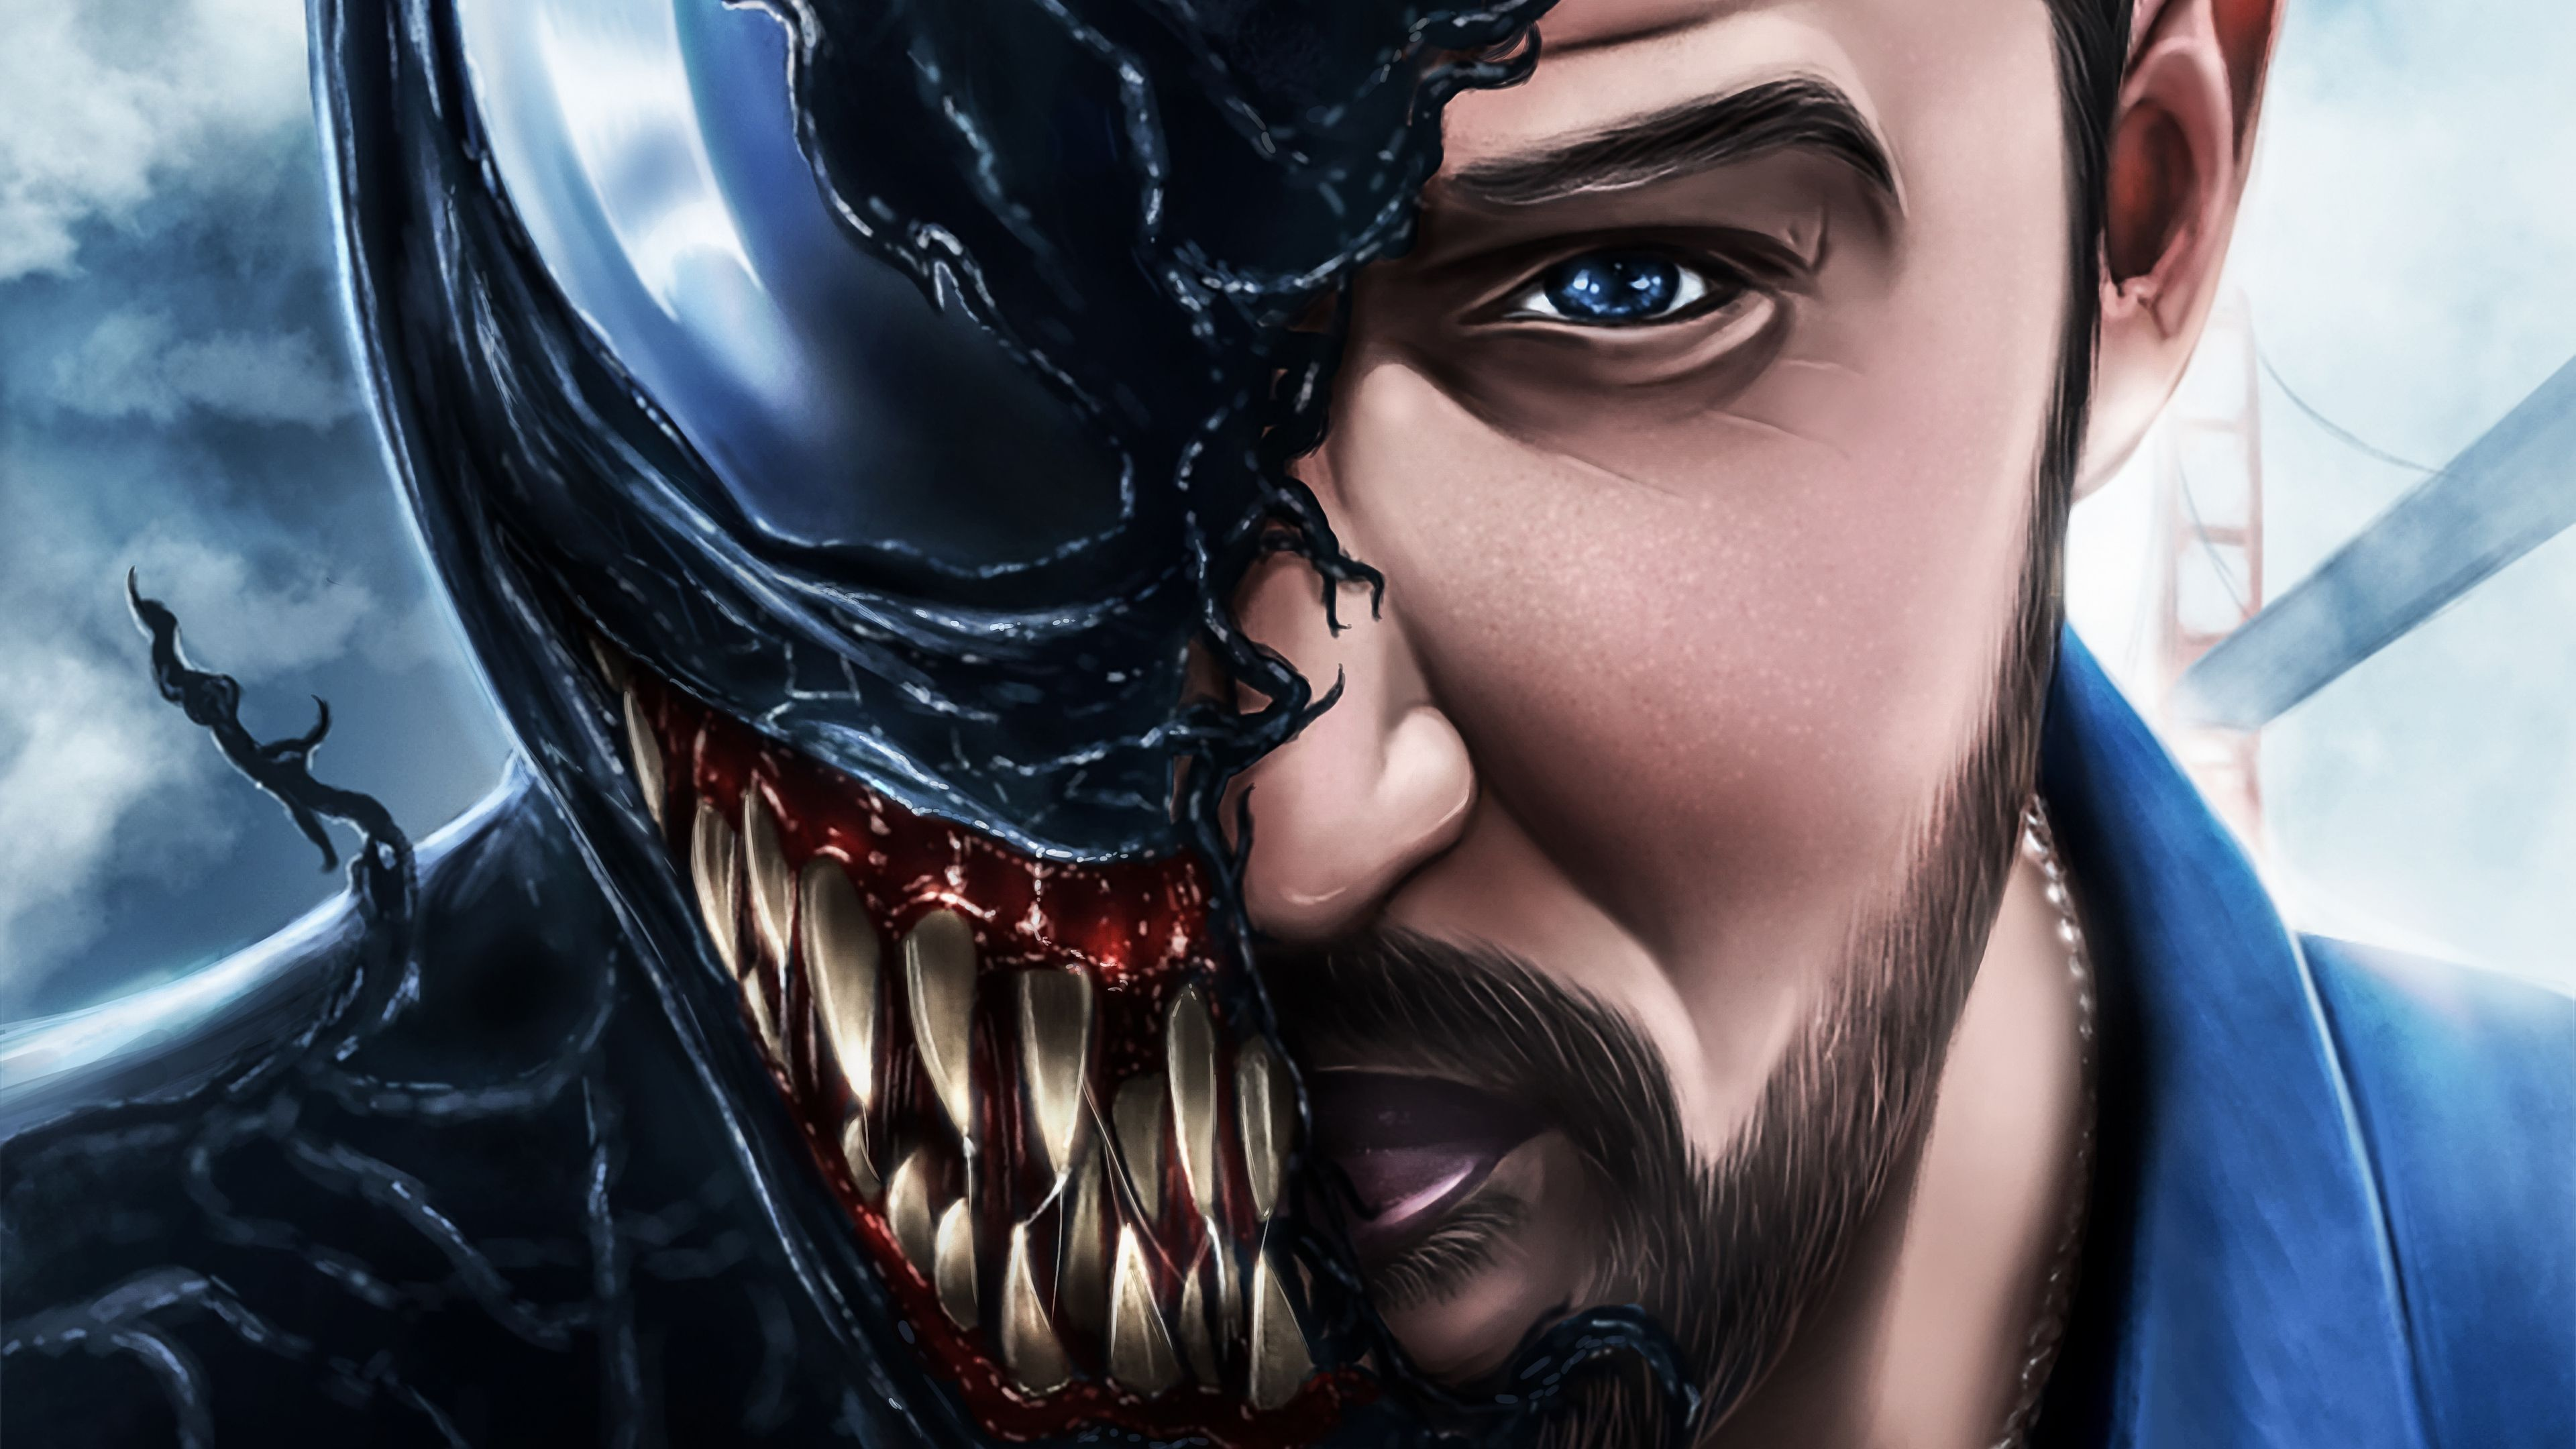 Venom Movie Artwork 4k 2018 Venom wallpapers, venom movie ...